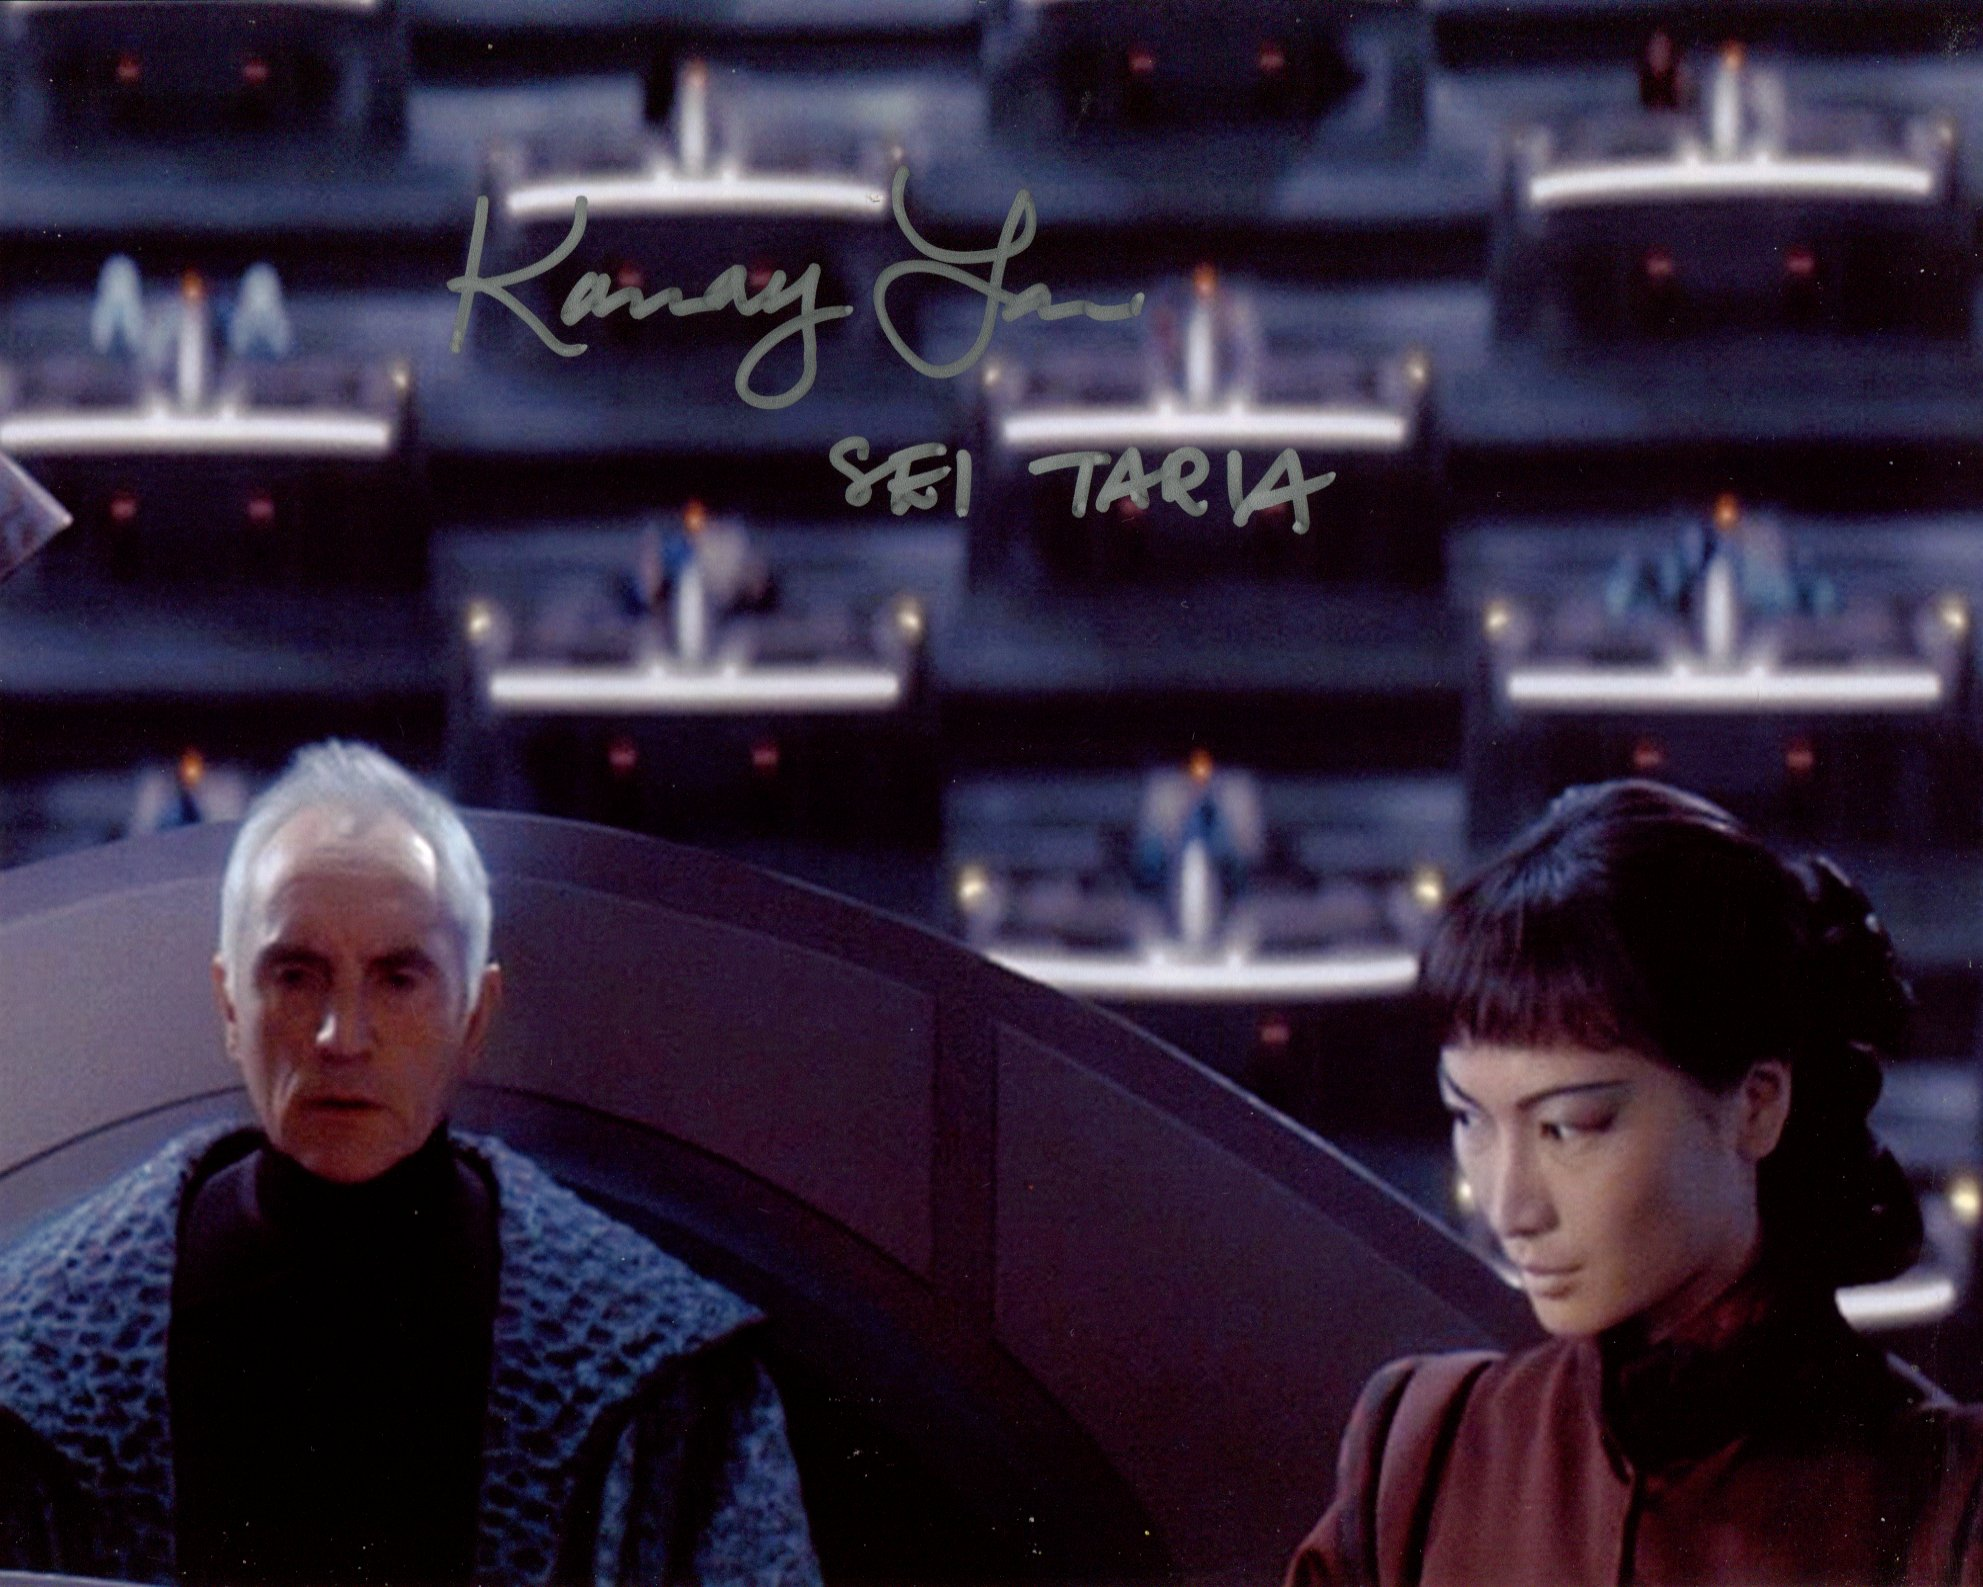 Star Wars 8x10 movie scene photo signed by actress Kamay Lau. Good condition. All autographs come